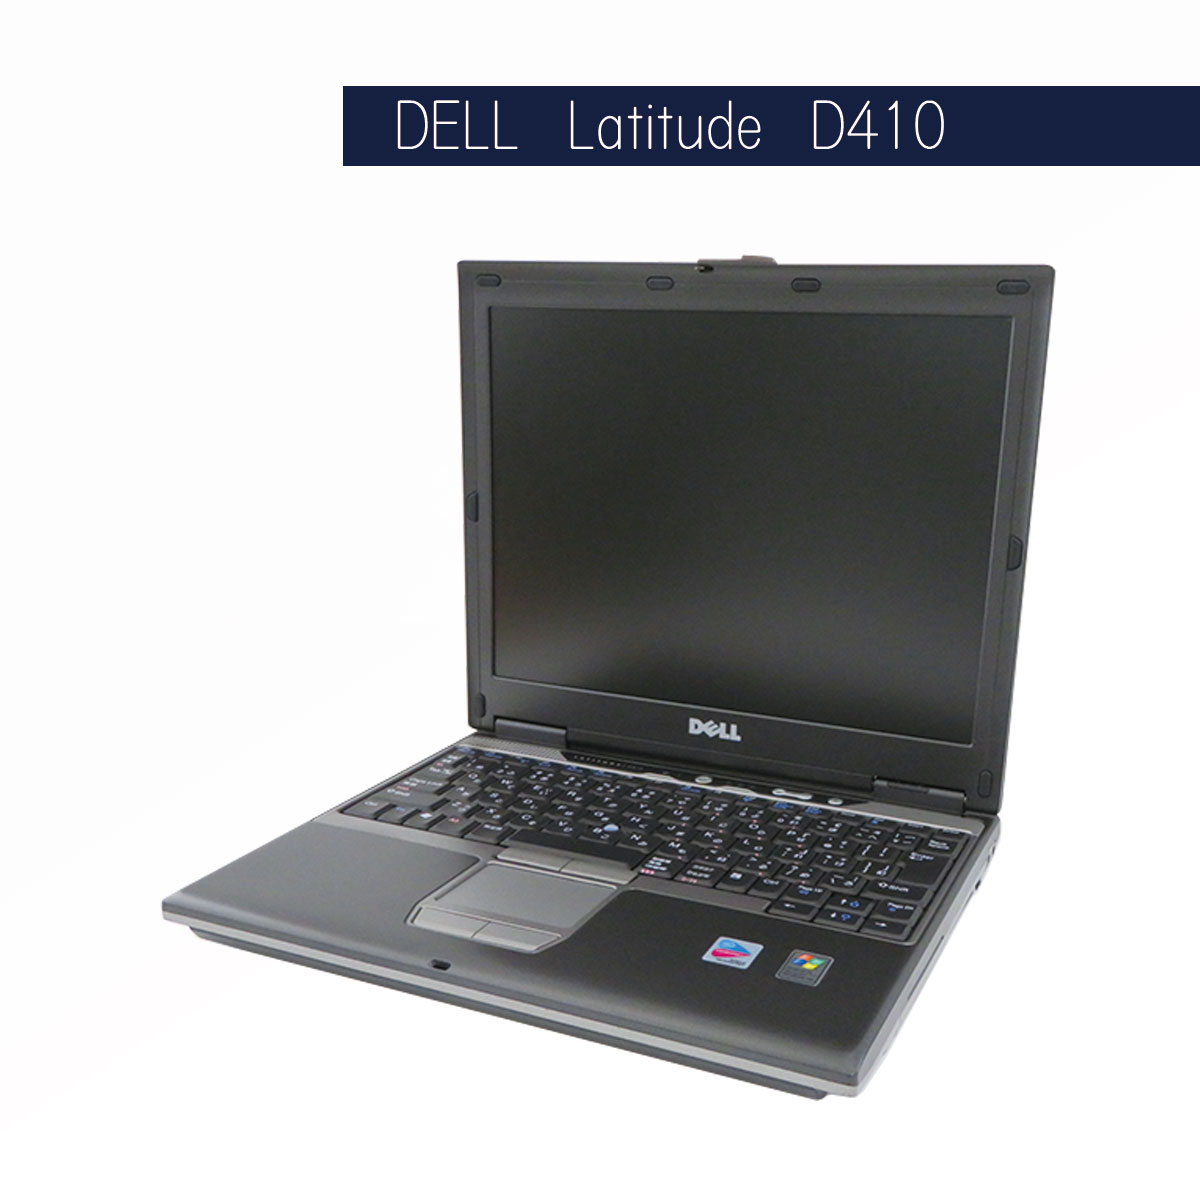 DELL Latitude D410 PentiumM 1.73GHz 512MB 40GB (WinXP)